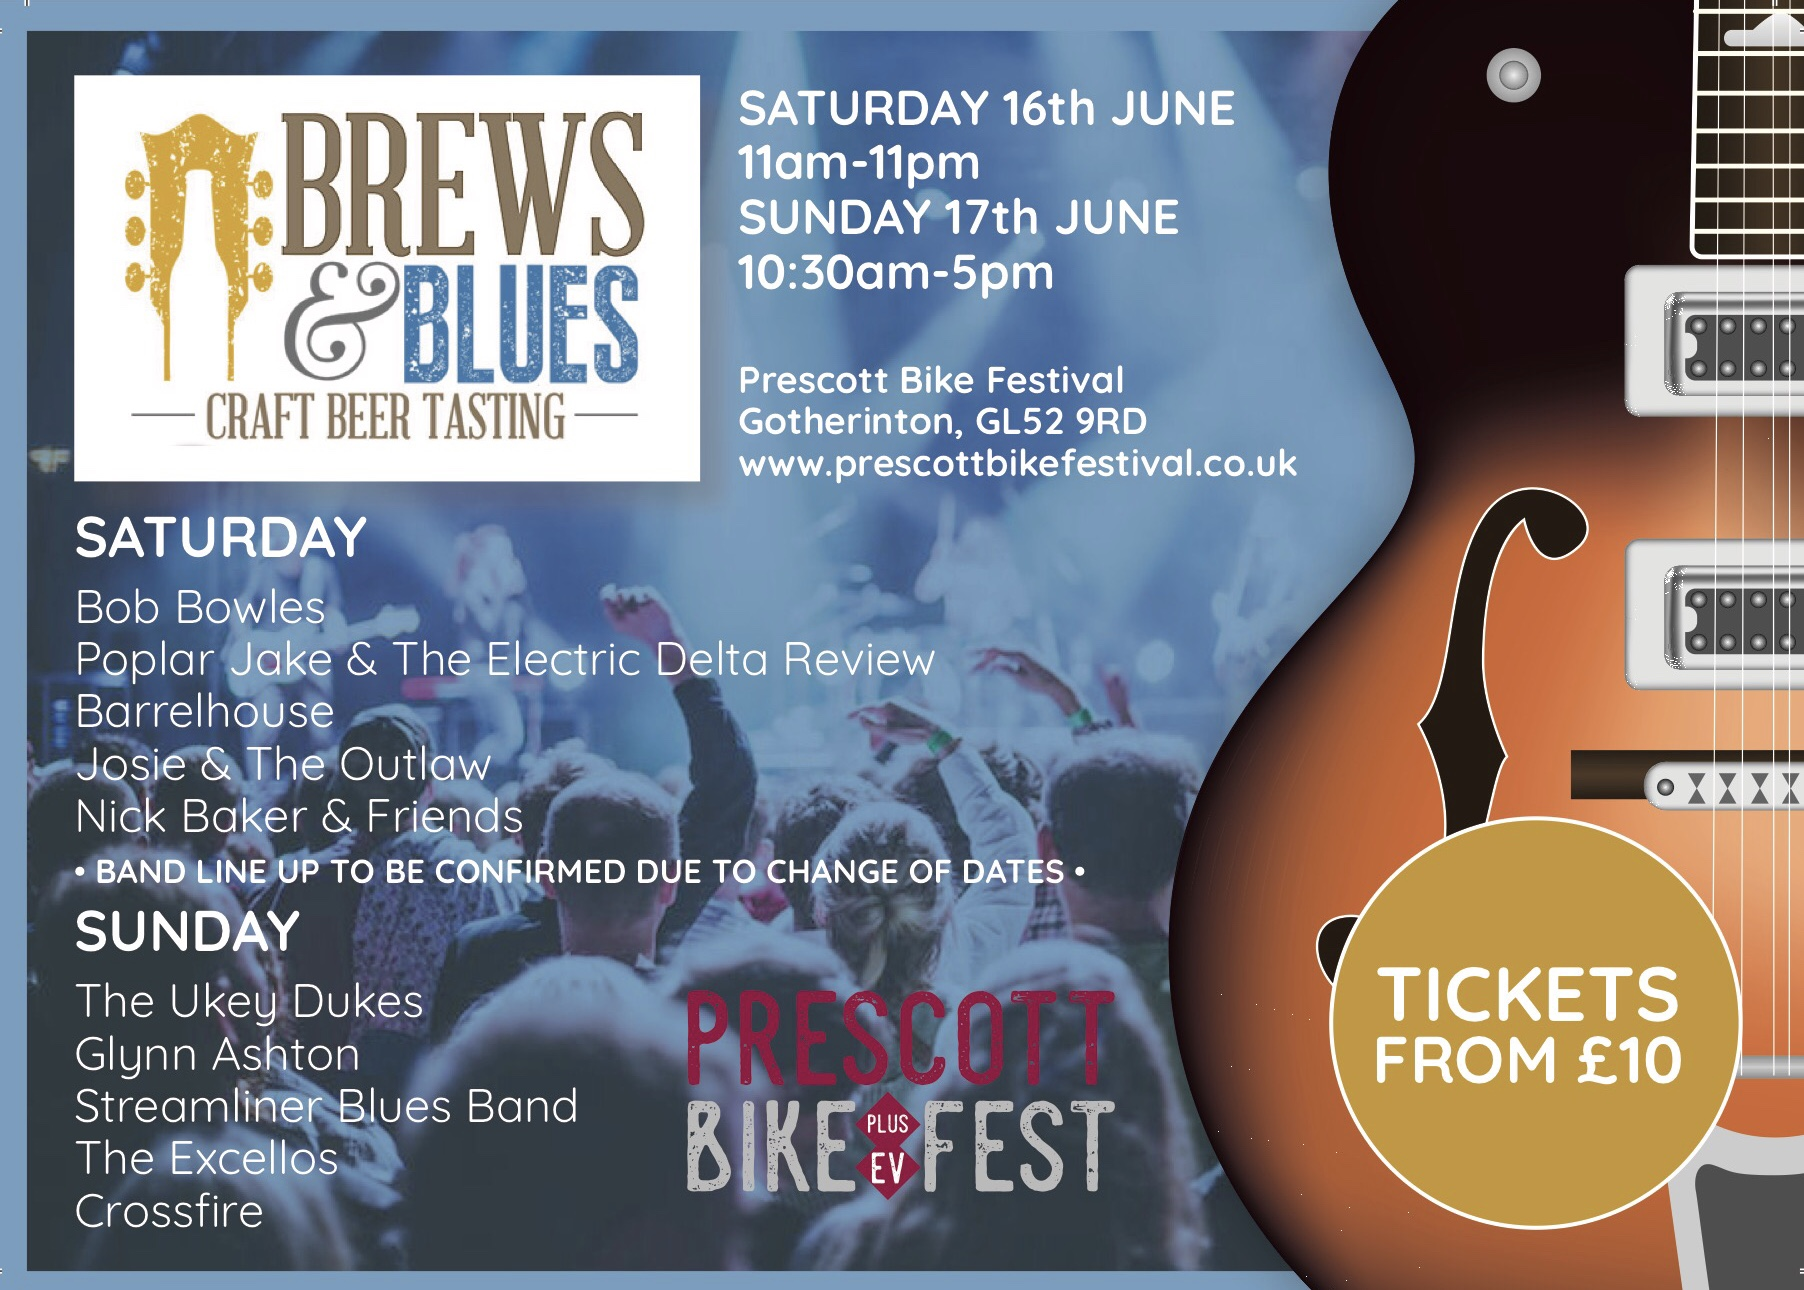 Prescott Bike Fest - Blues & Brews